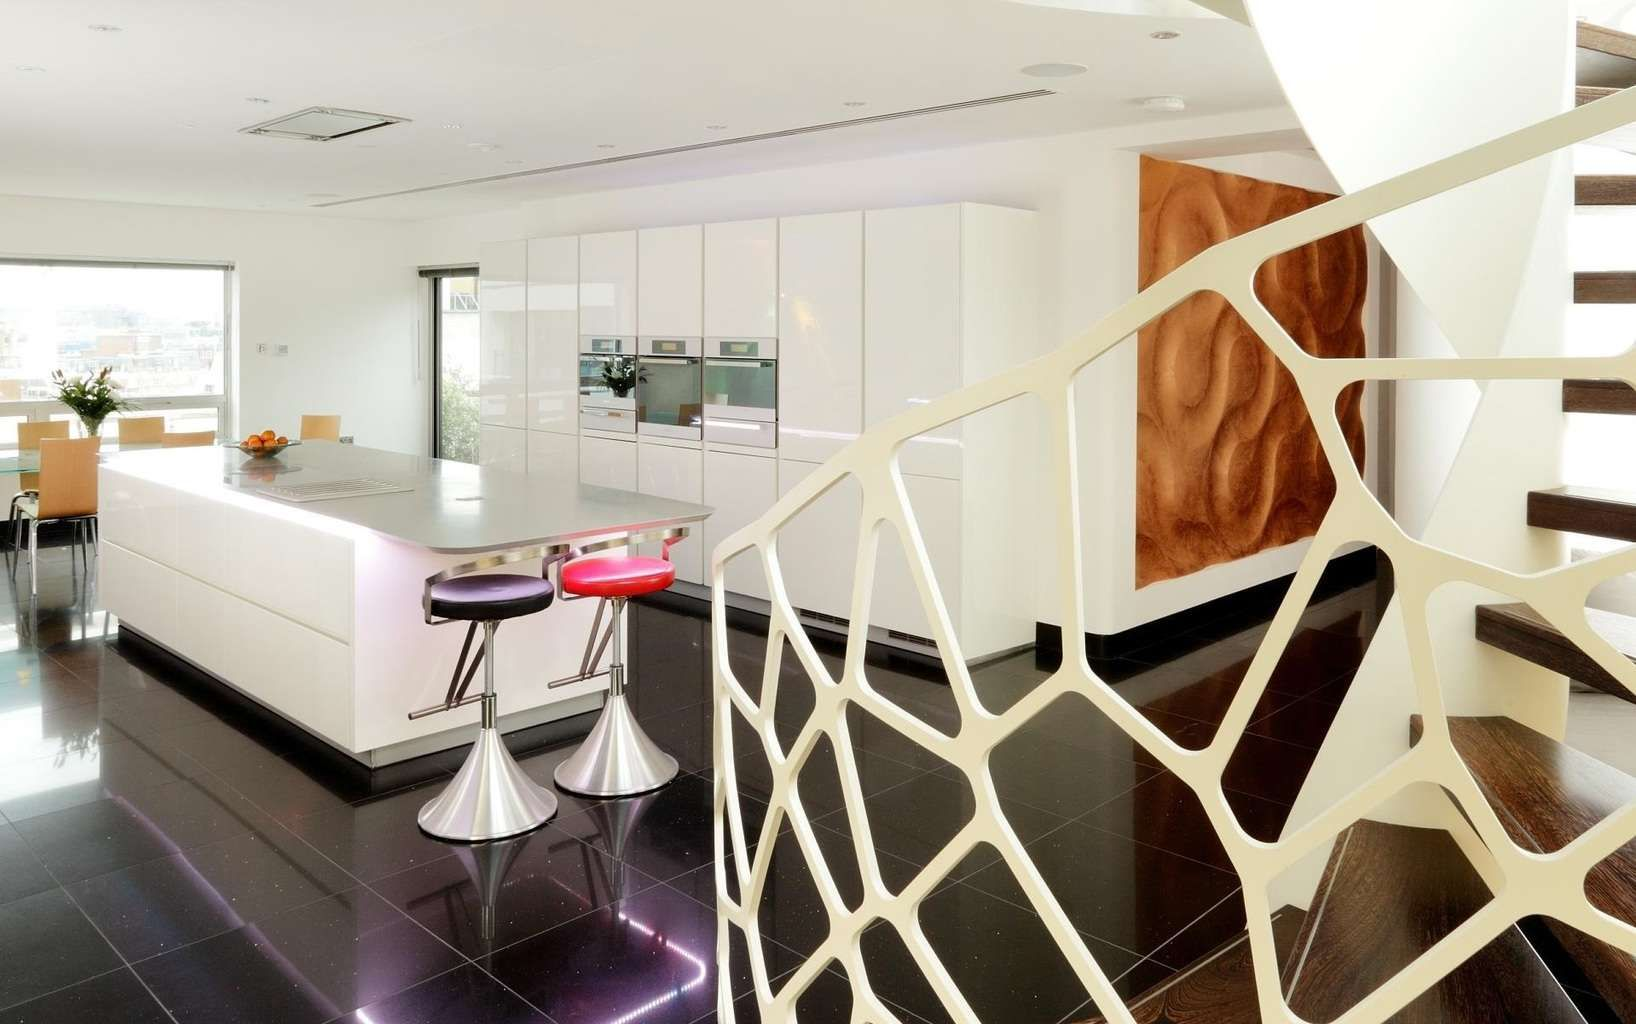 White Gloss Kitchens Design Trend | Boo Roo and Tigger Too